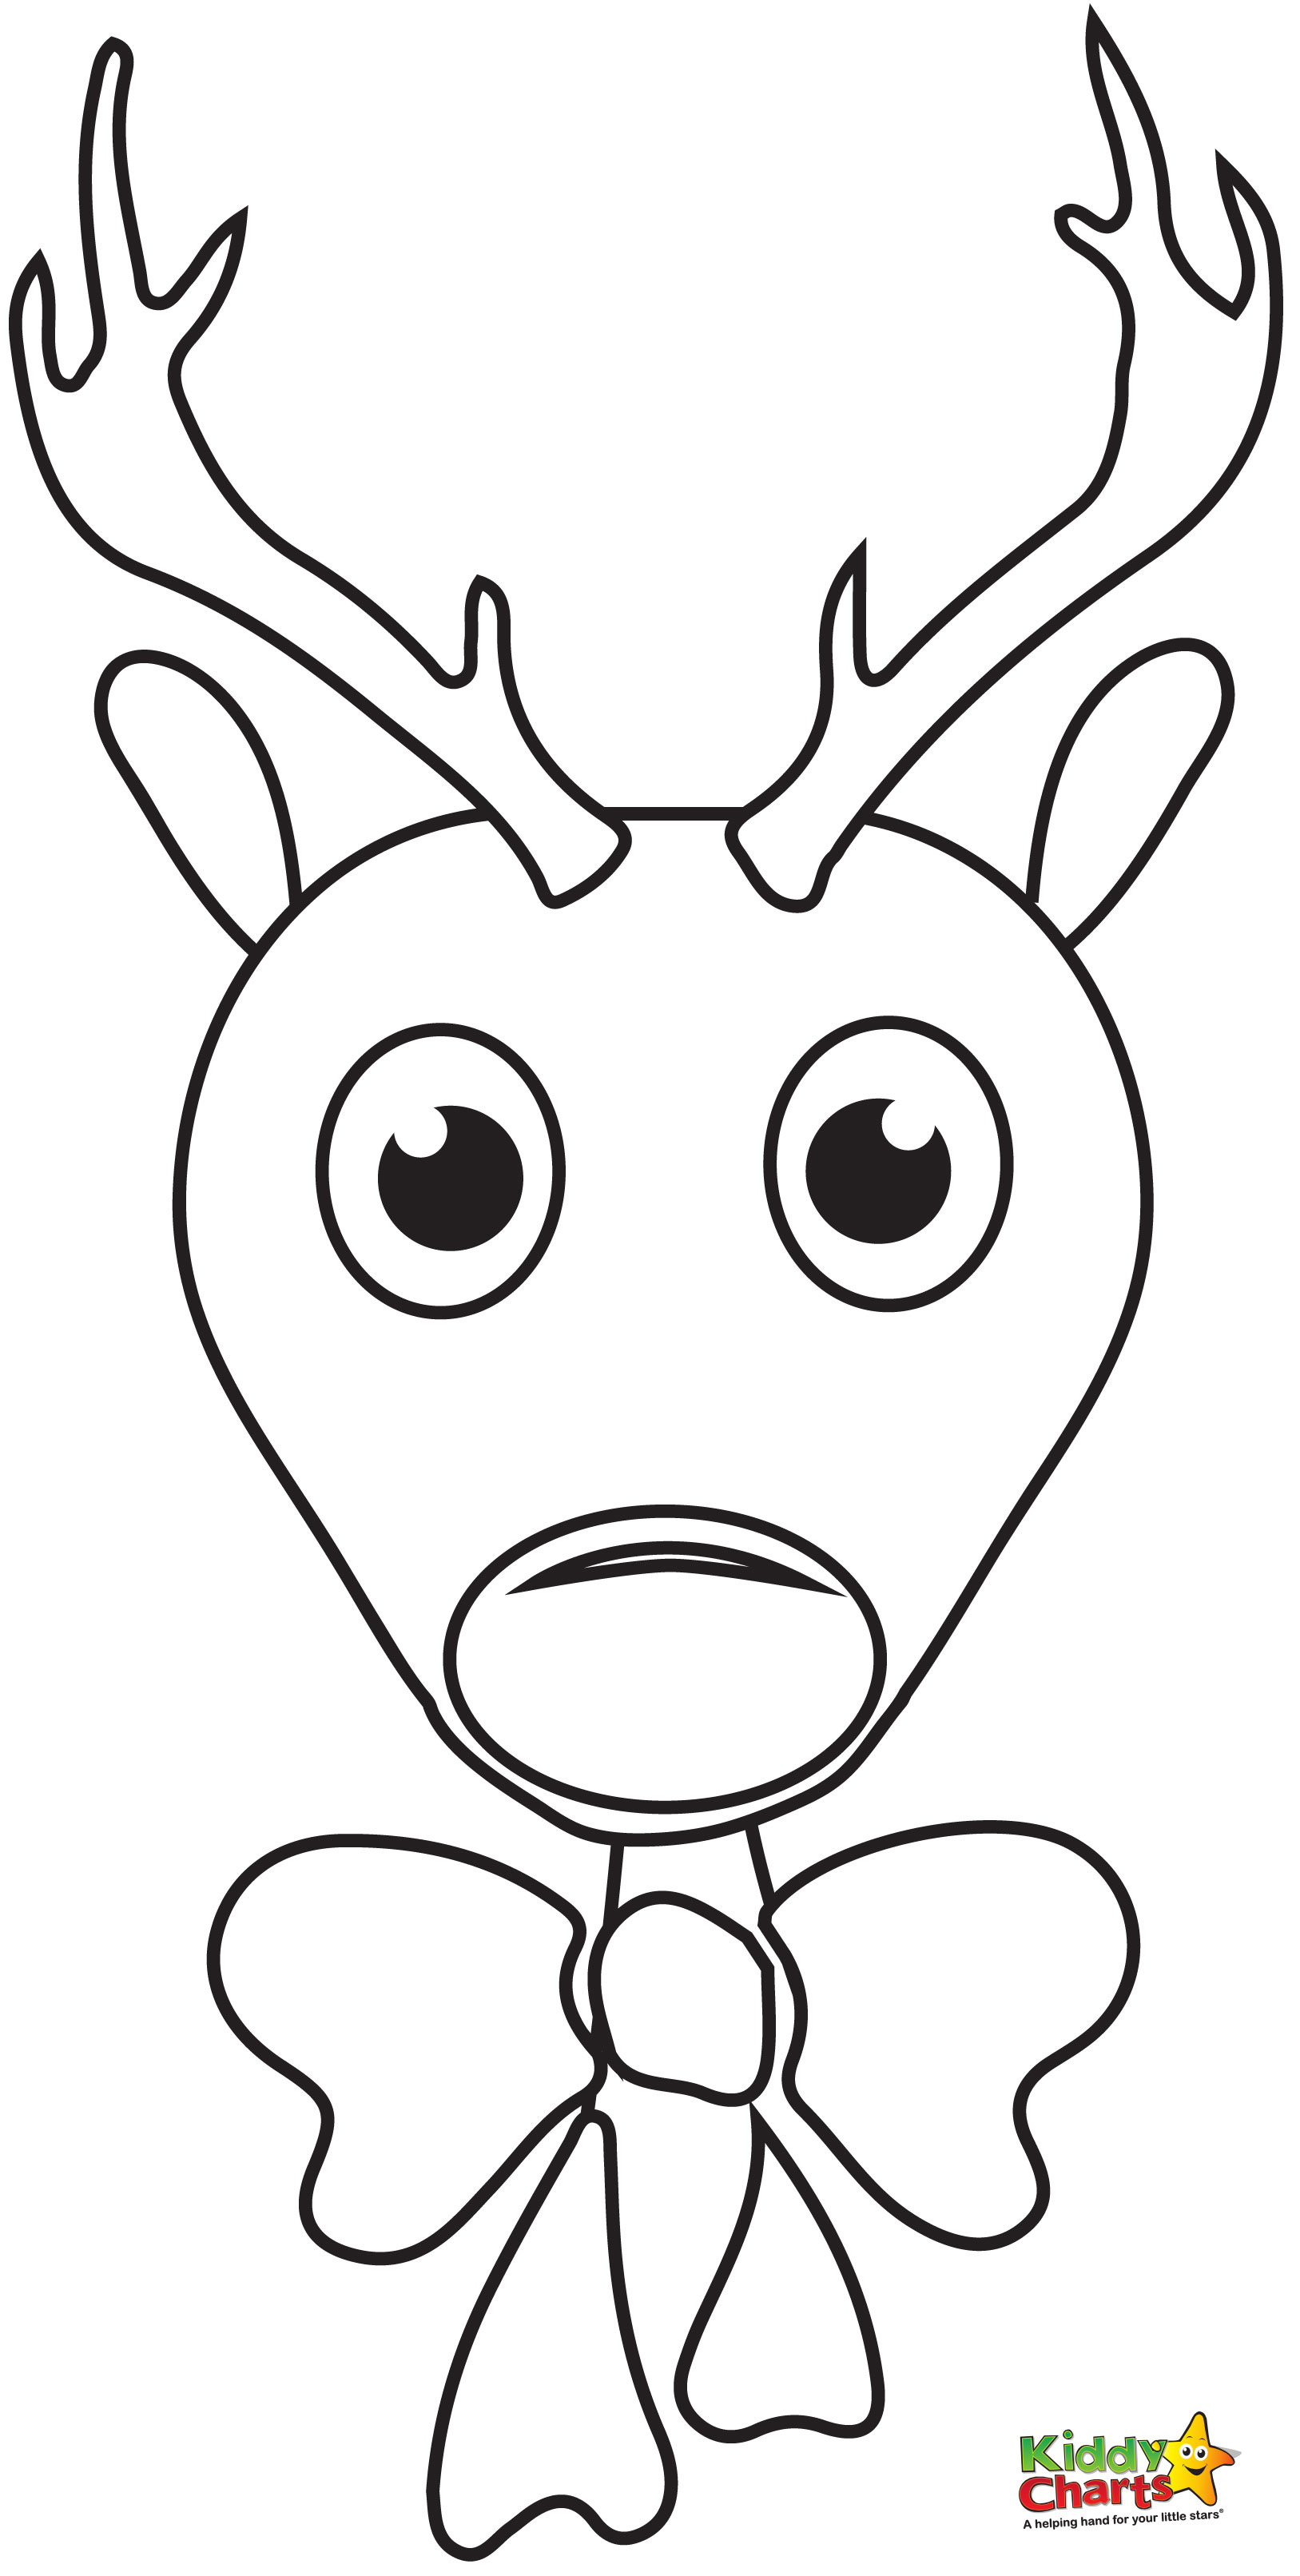 Rudolph The Red Nosed Reindeer Coloring Pages To Print At